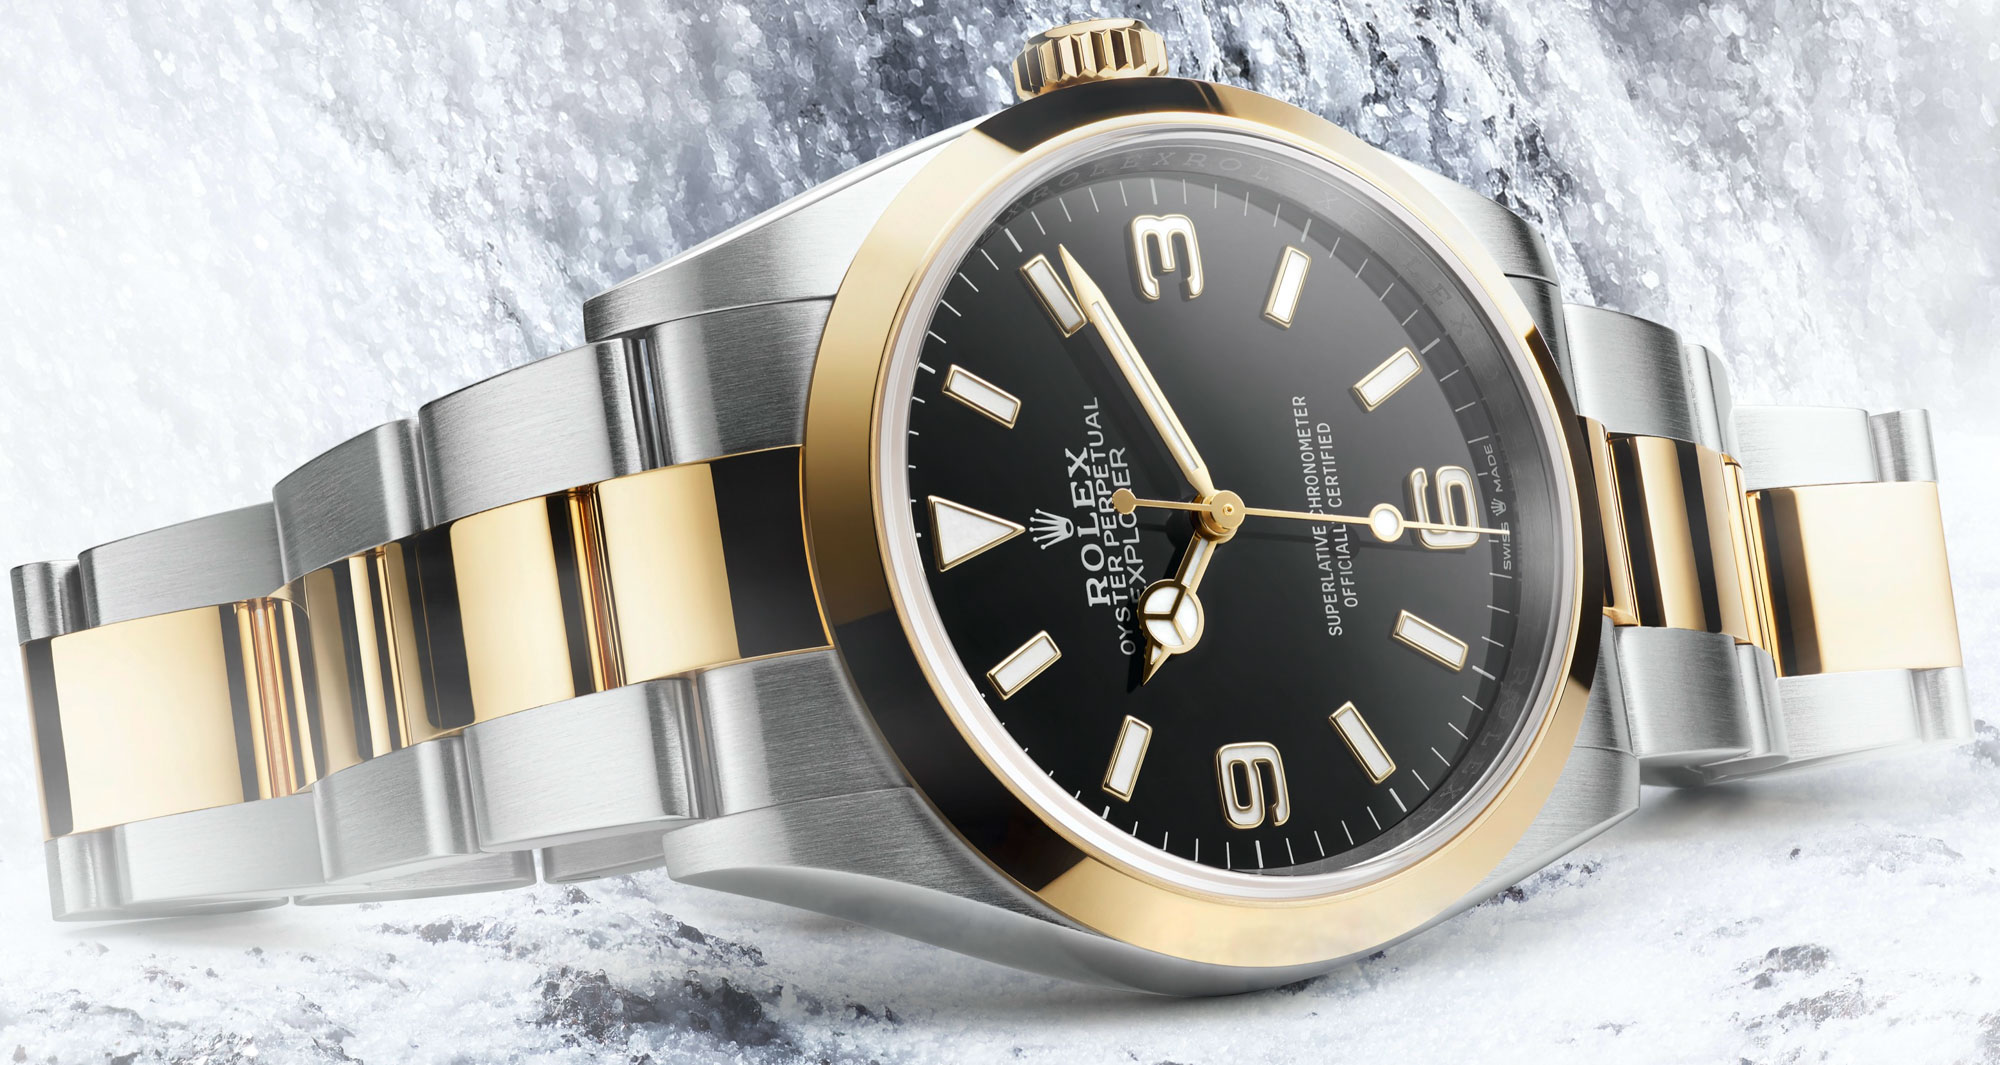 Are You Looking For Replica Rolex on Amazon?